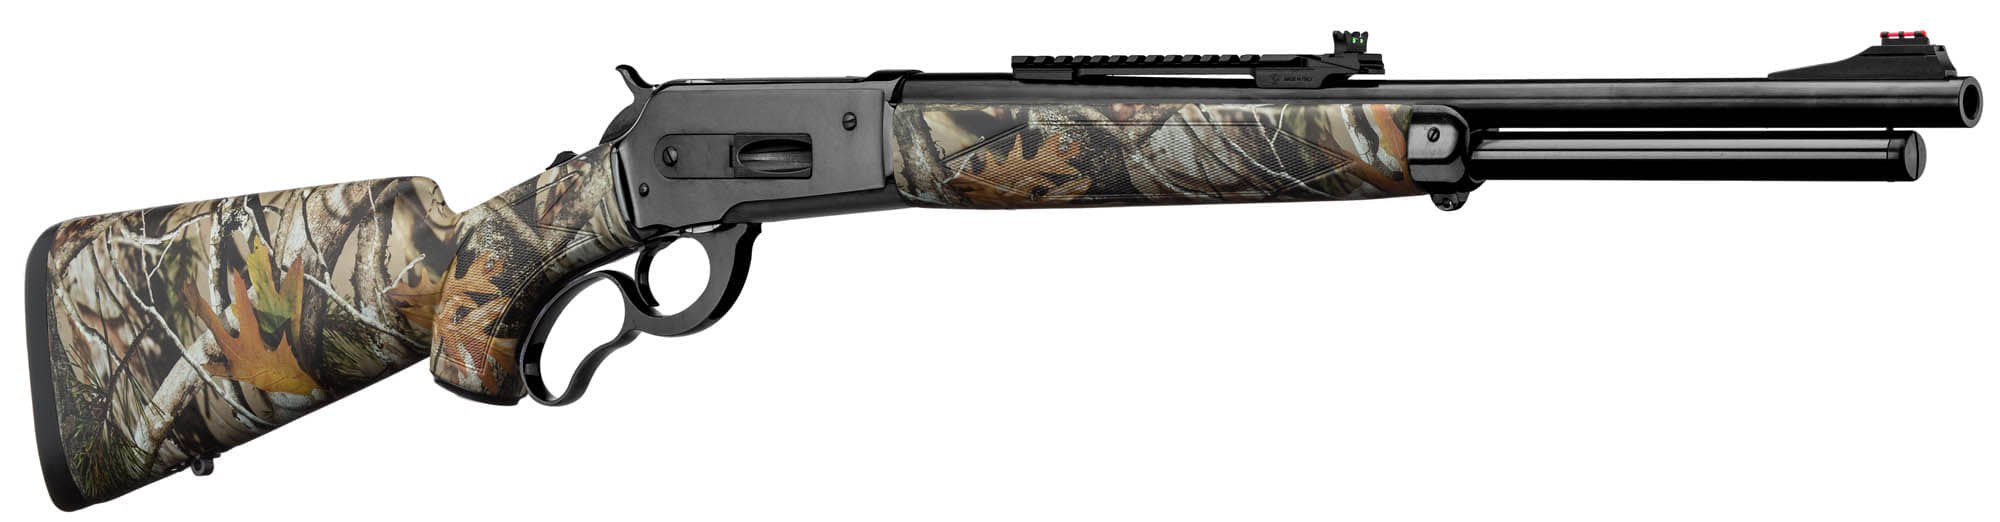 DPSM741-4-Carabine Pedersoli lever action mod. 86/71 cal . 444 Marlin - camo forest - DPSM741